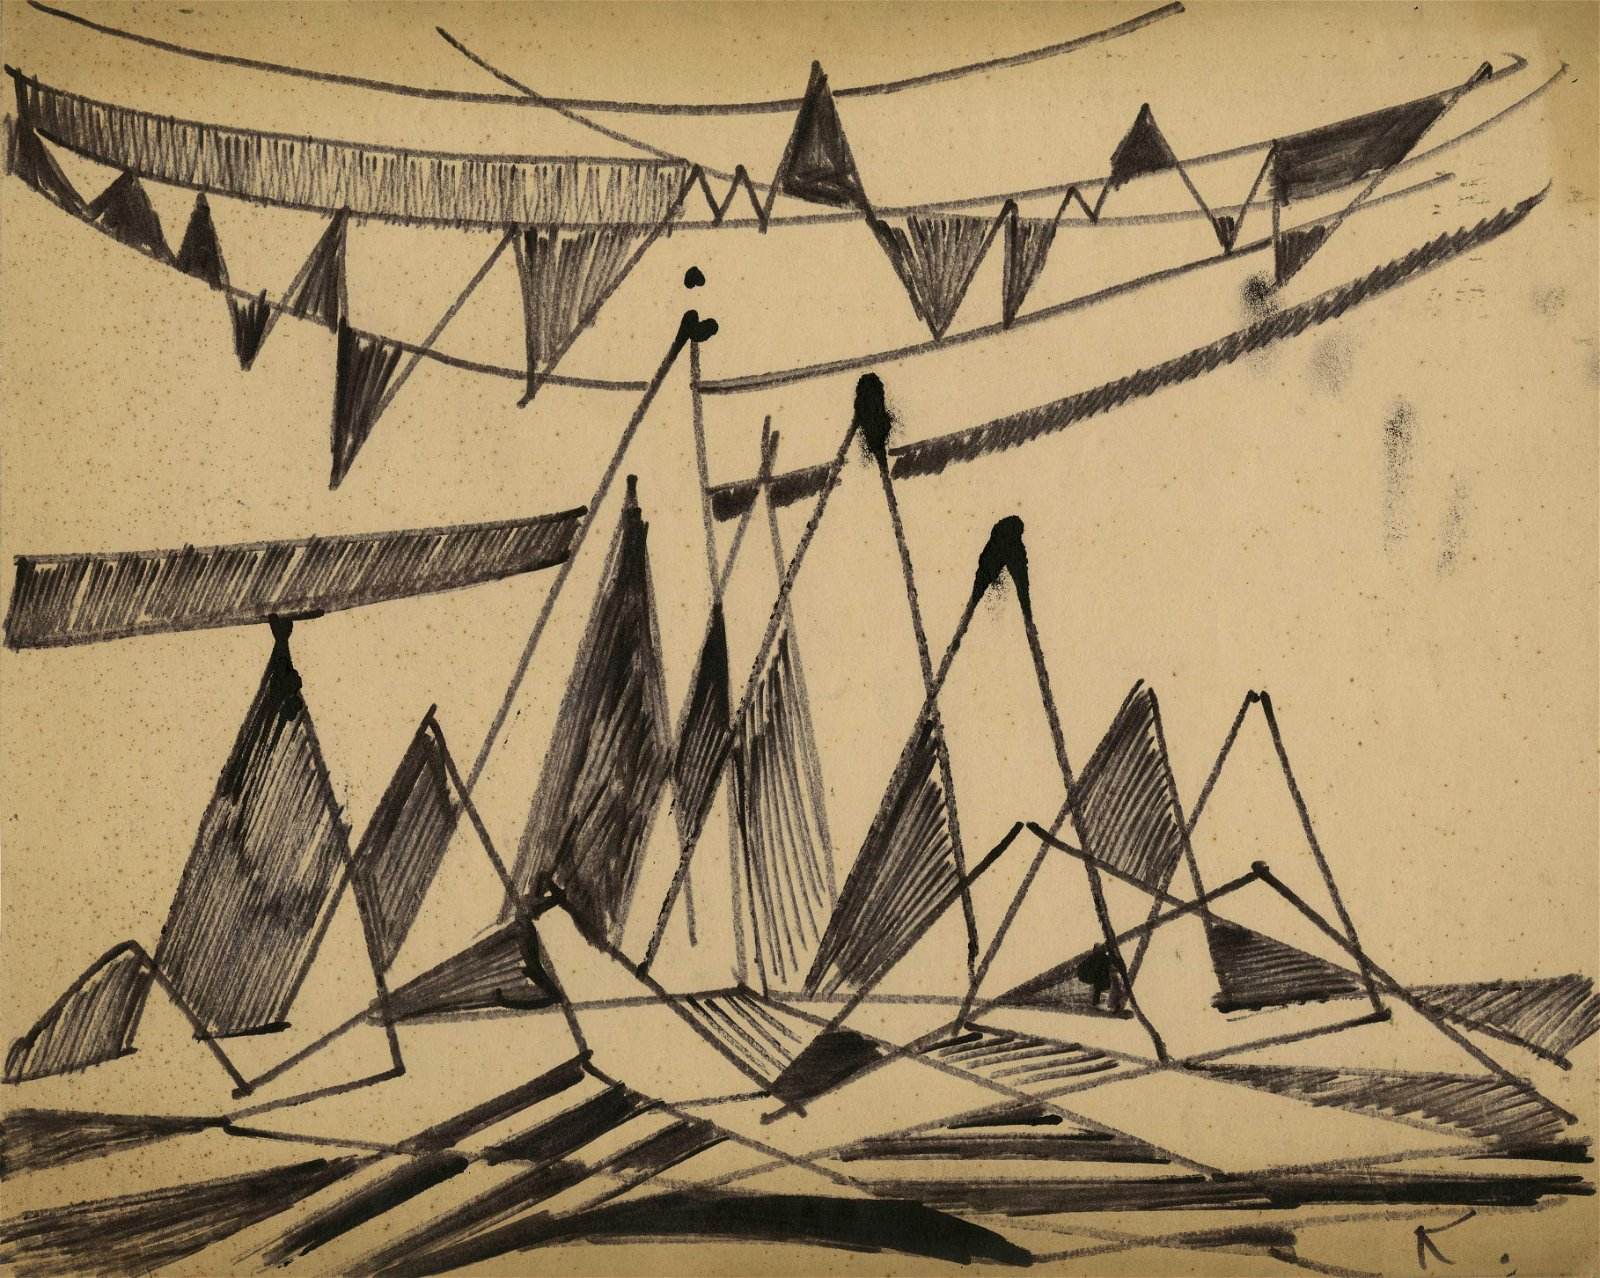 JALED MUYAES - Non-objective Composition #50C - Pen and